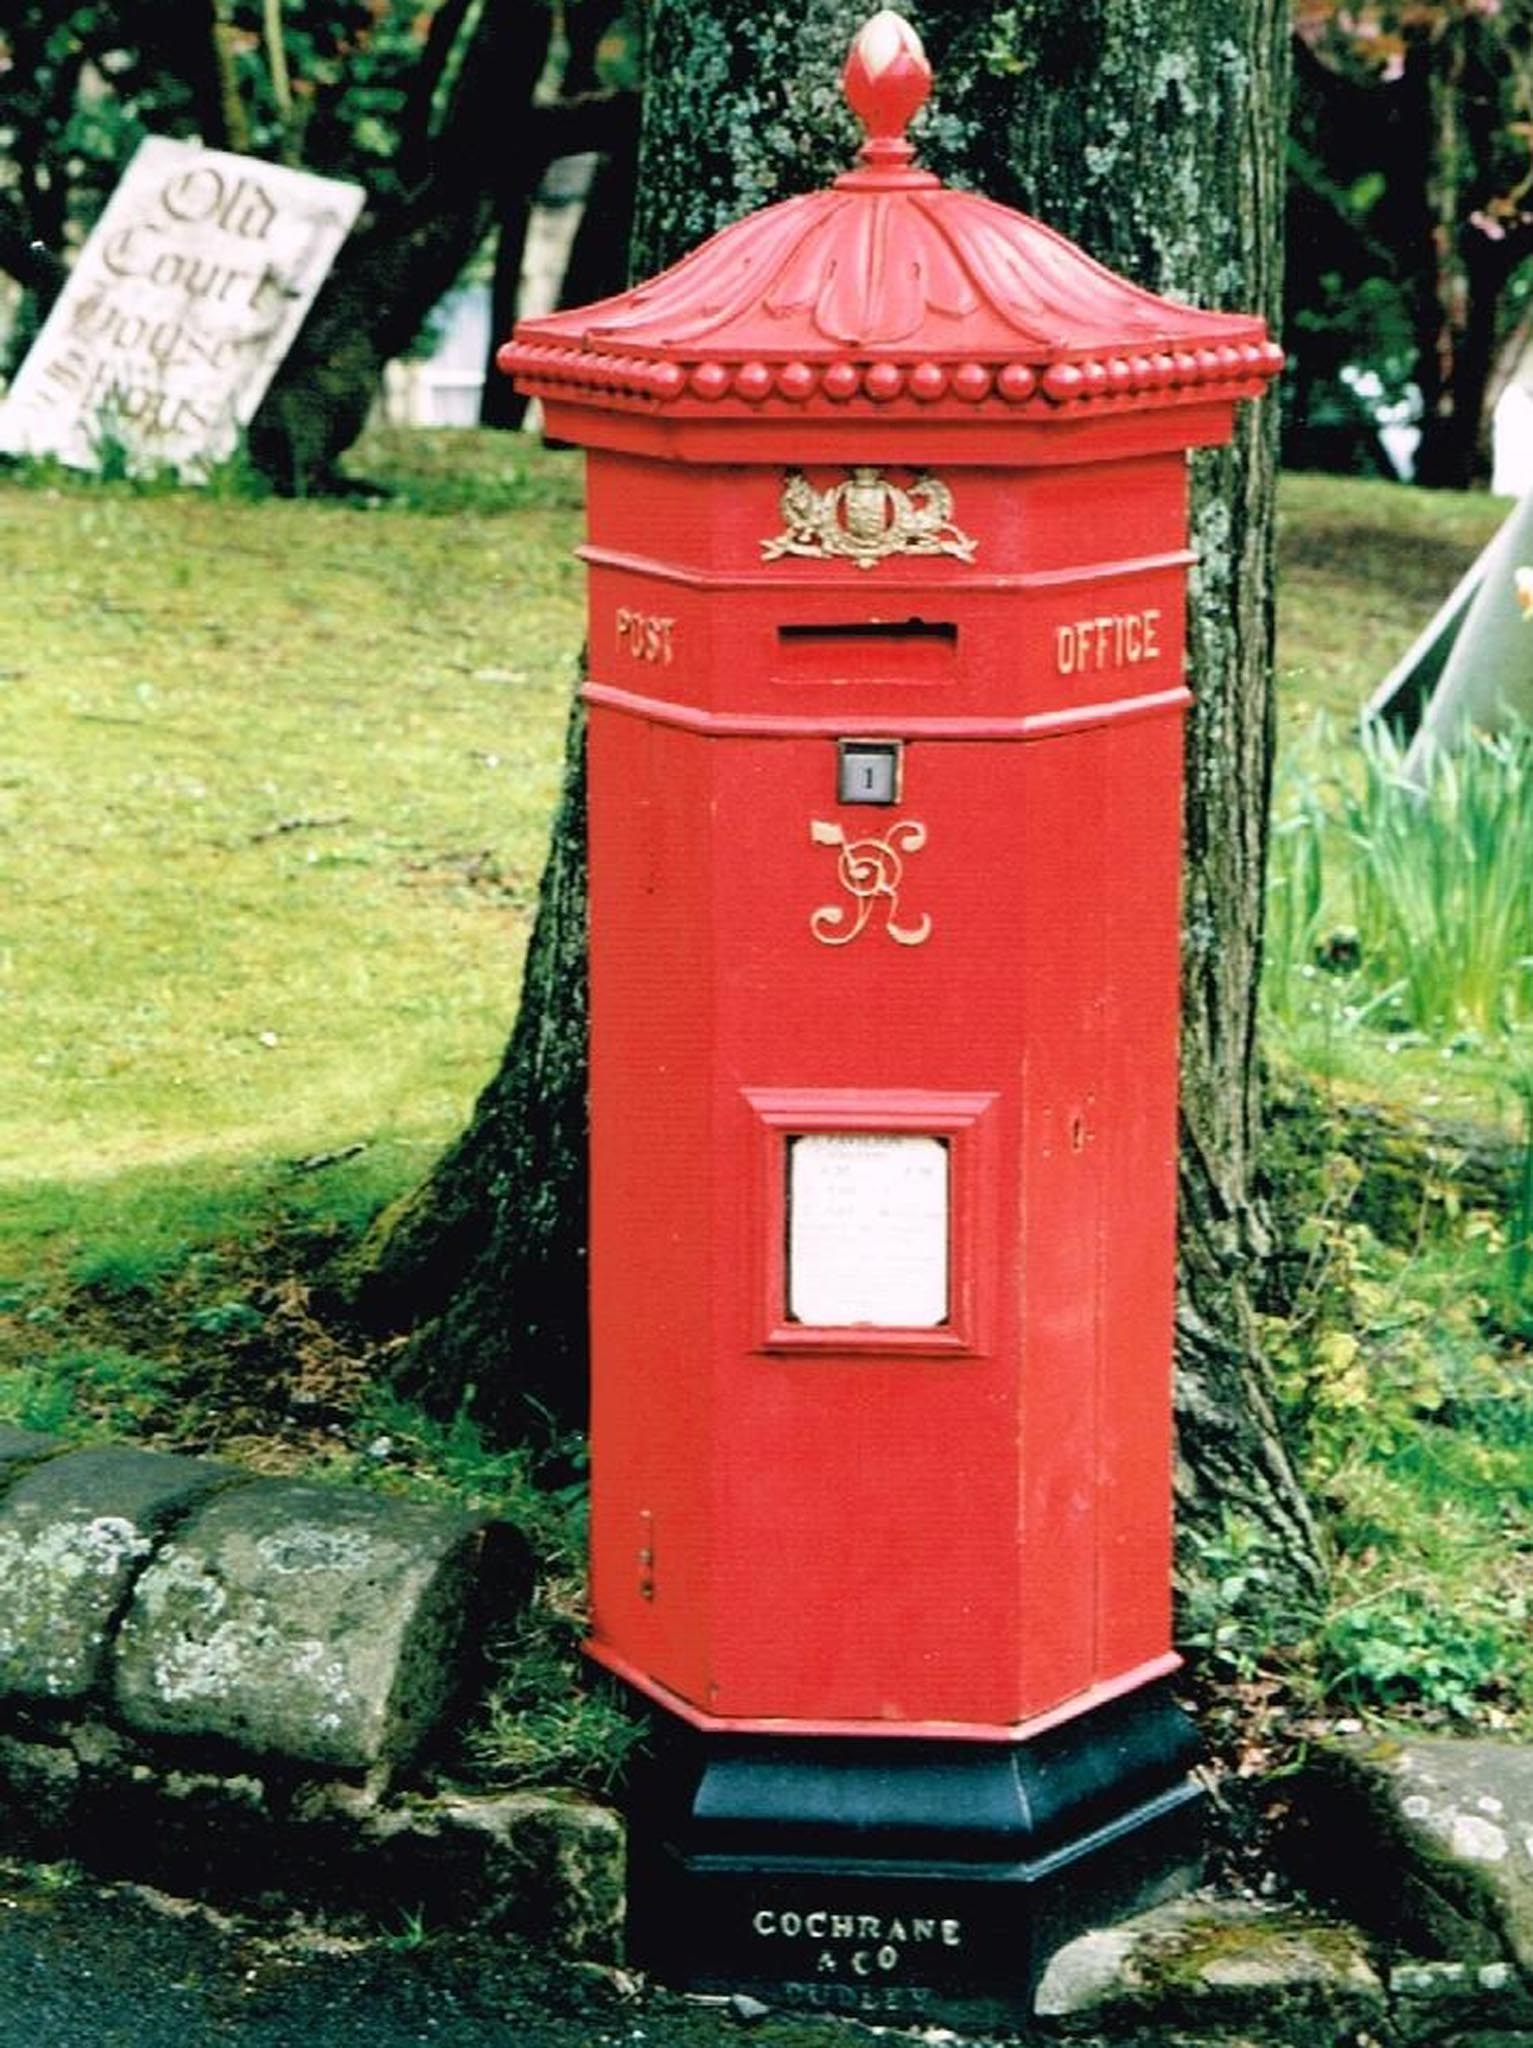 VR Penfold pillar box 1870s, Peak District. Simon Vaughan Winter